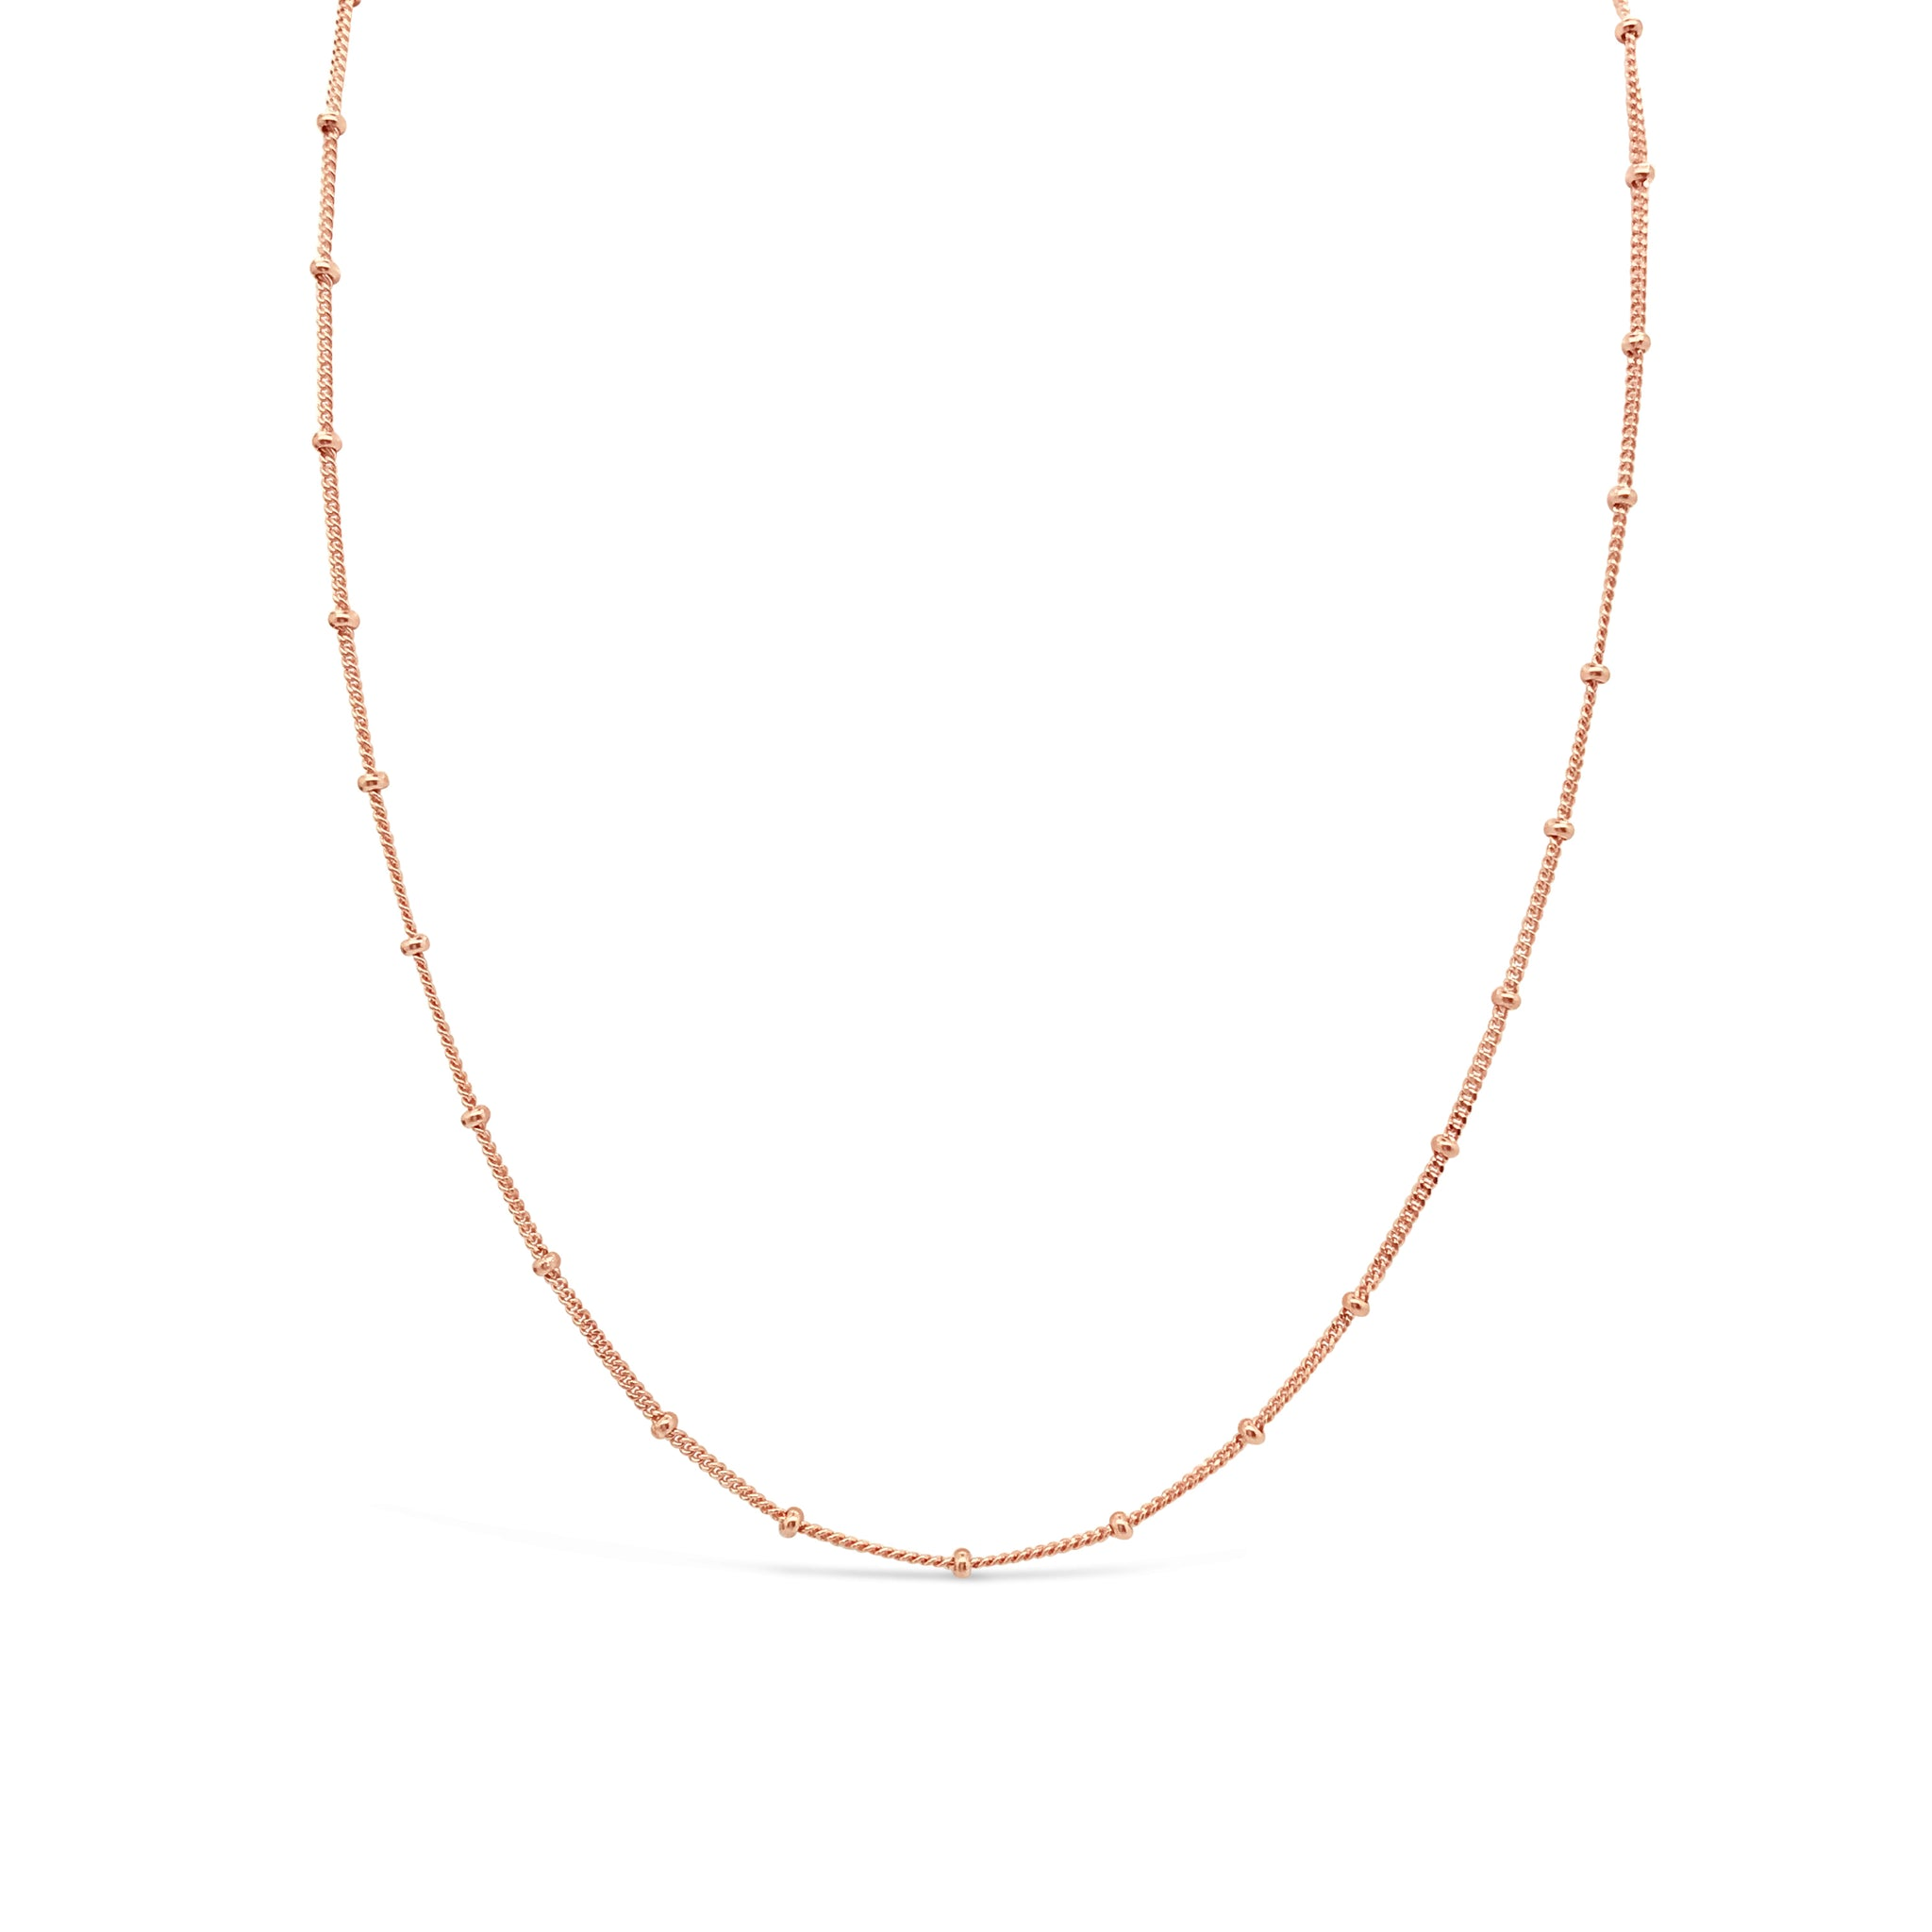 BALL CHAIN CHOKER, ROSE GOLD